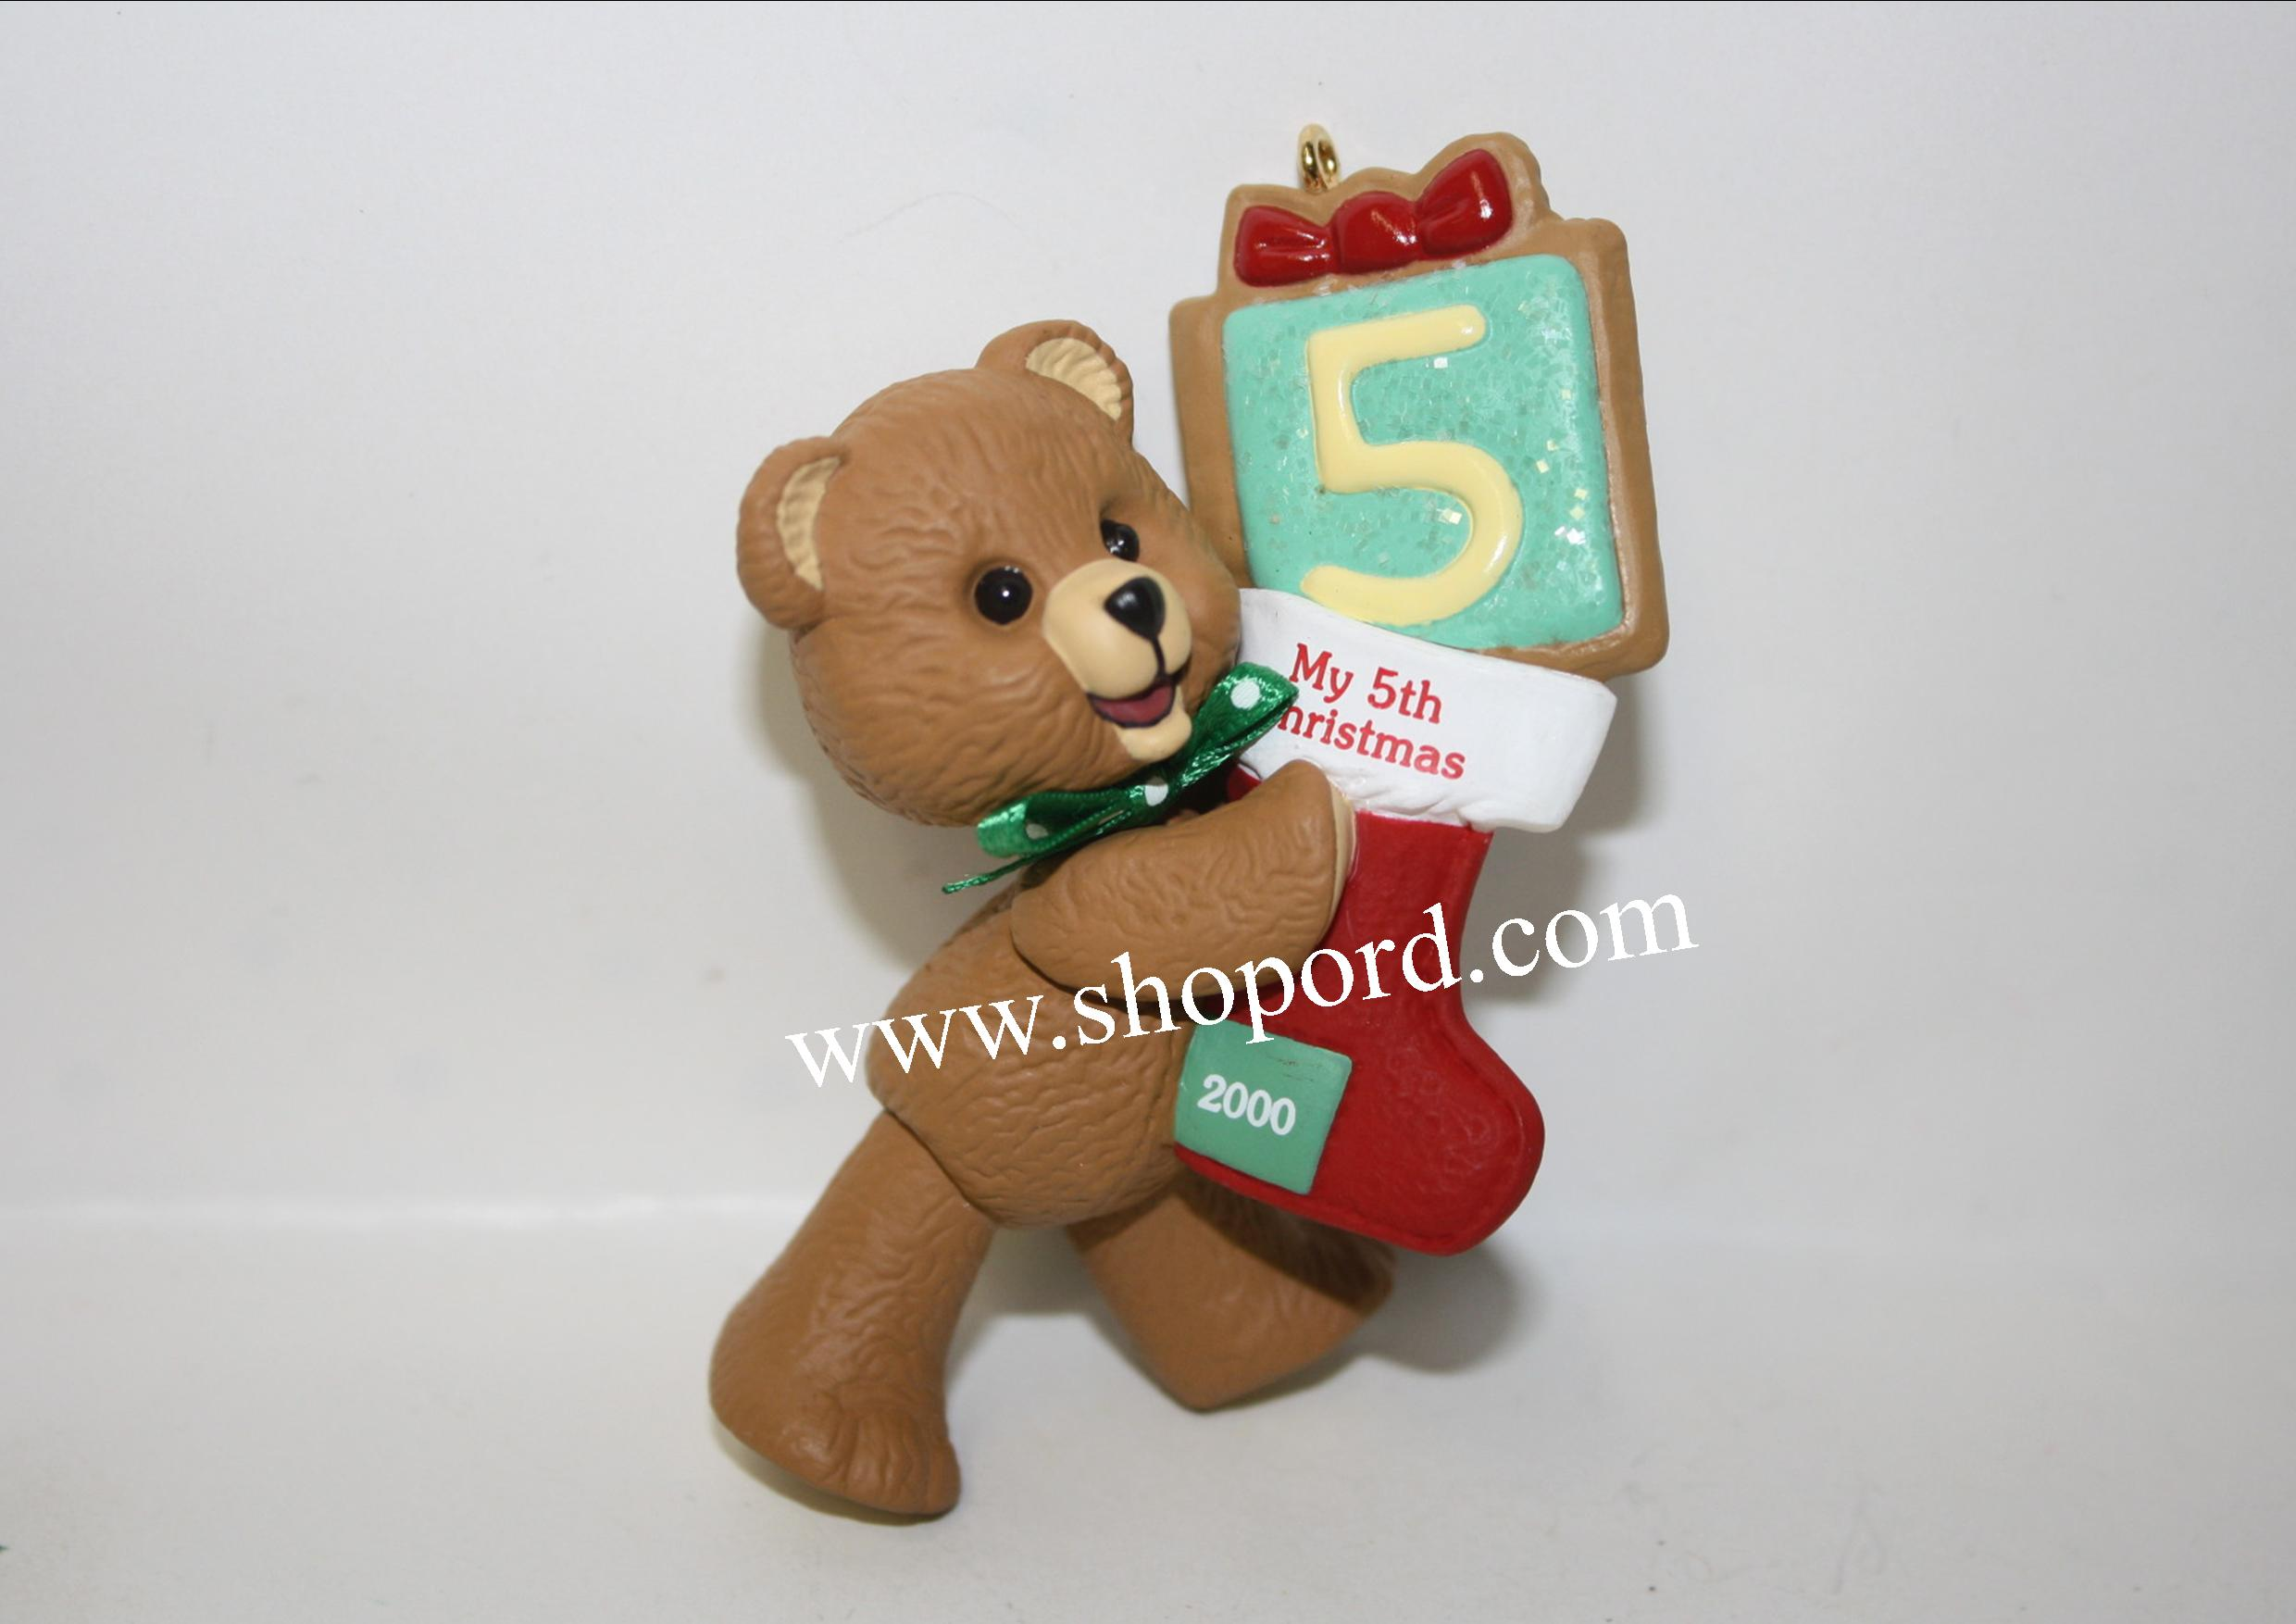 Hallmark 2000 Childs Fifth Christmas Ornament Childs Age Collection Teddy Bear Years QX6934 Damaged Box